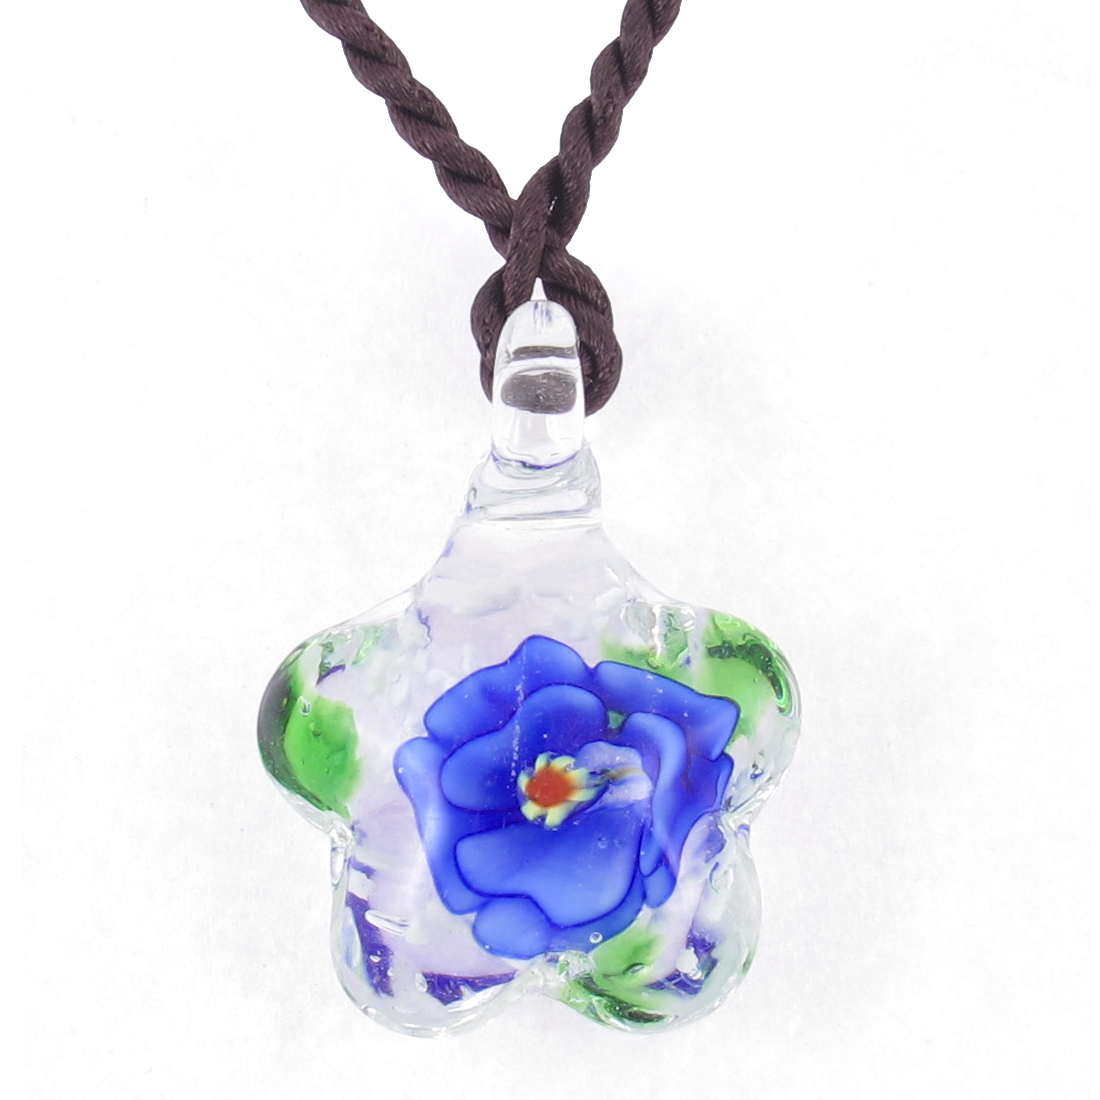 Lady Braided Rope Blue Flower Grass Inside Star Shaped Glass Necklace